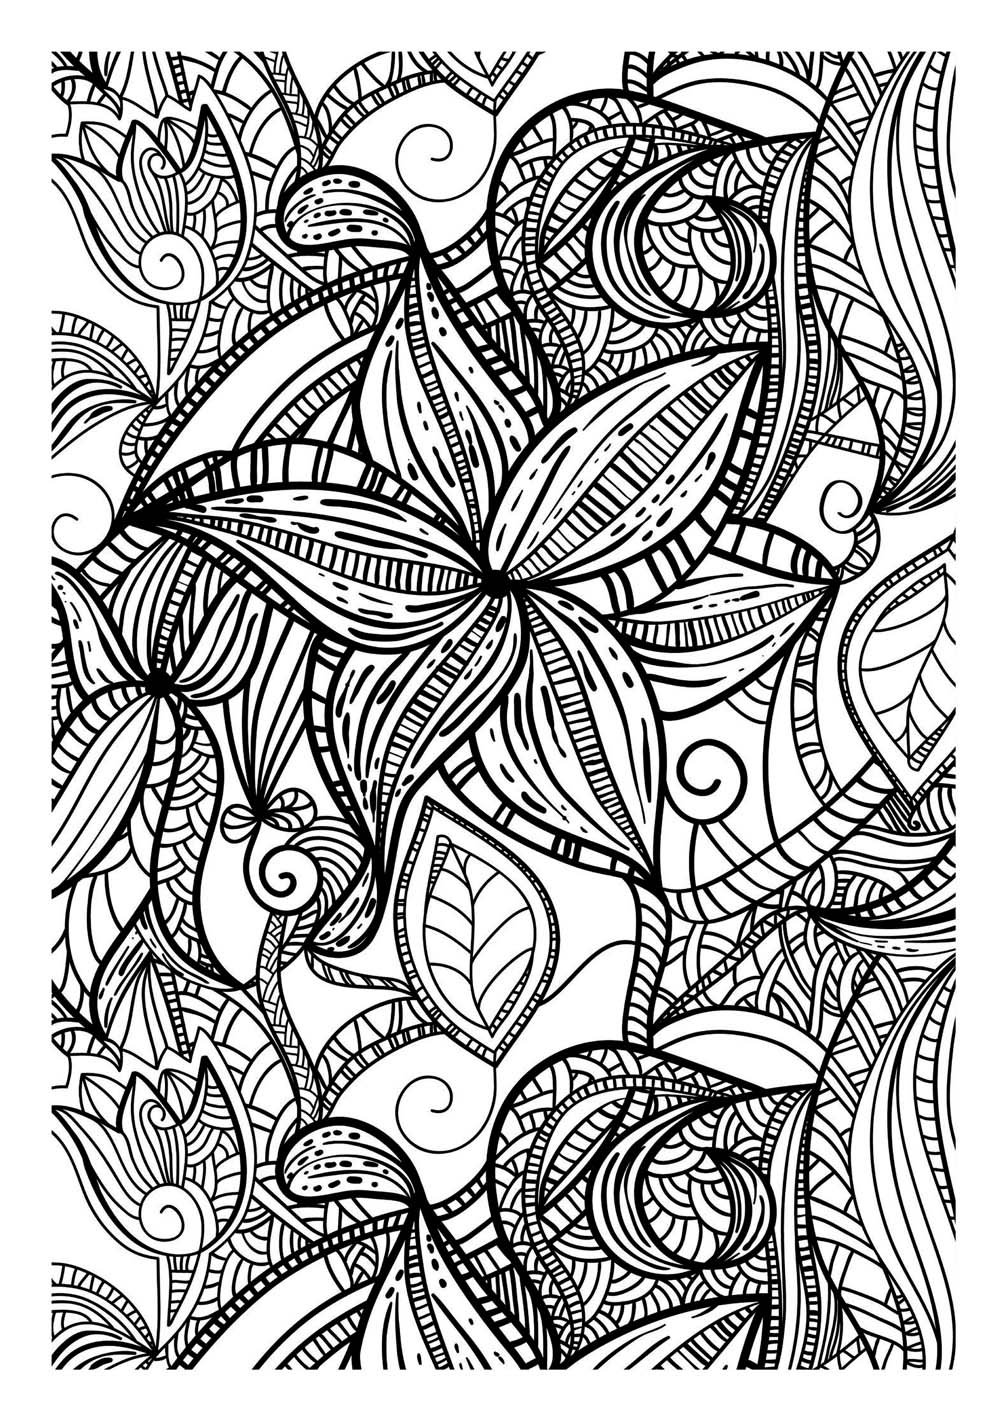 Color therapy anti stress coloring book app - Art Thearapie 100 Coloriages Anti Stress French Edition Collectif 9782012307148 Amazon Com Books